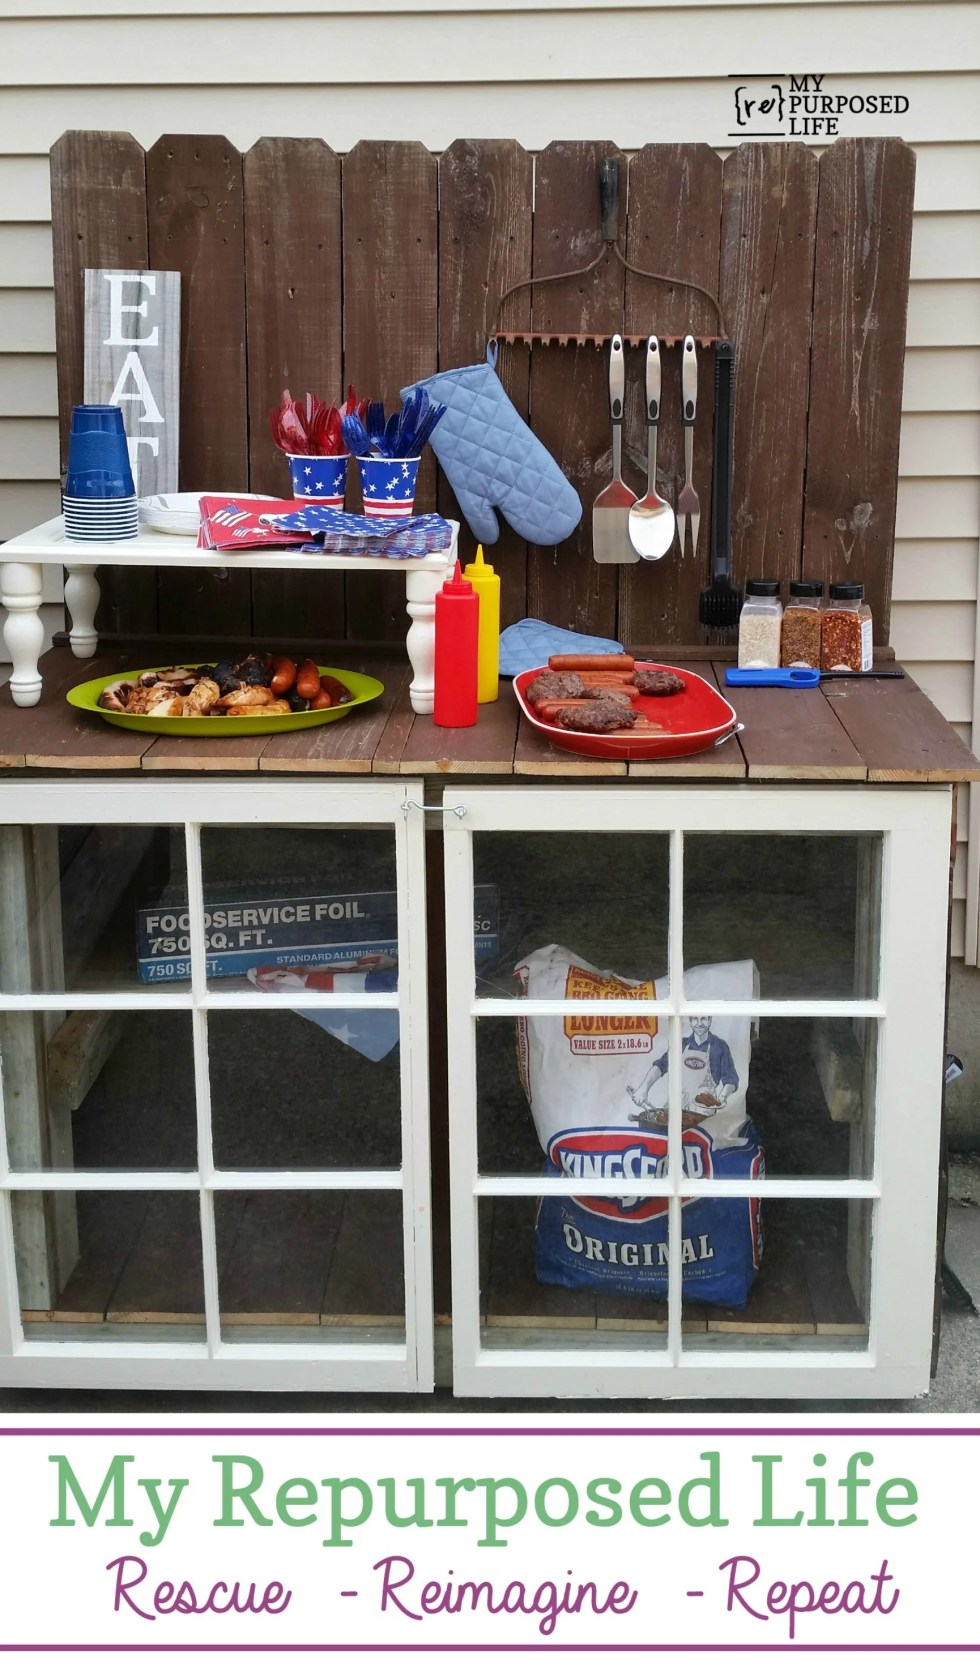 Are you an outdoors person who loves to grill or garden? This cabinet is easy to build and because it uses all reclaimed lumber, the price is right! #MyRepurposedLife #reclaimed #outdoor #barbecue #grilling #gardening #potting via @repurposedlife